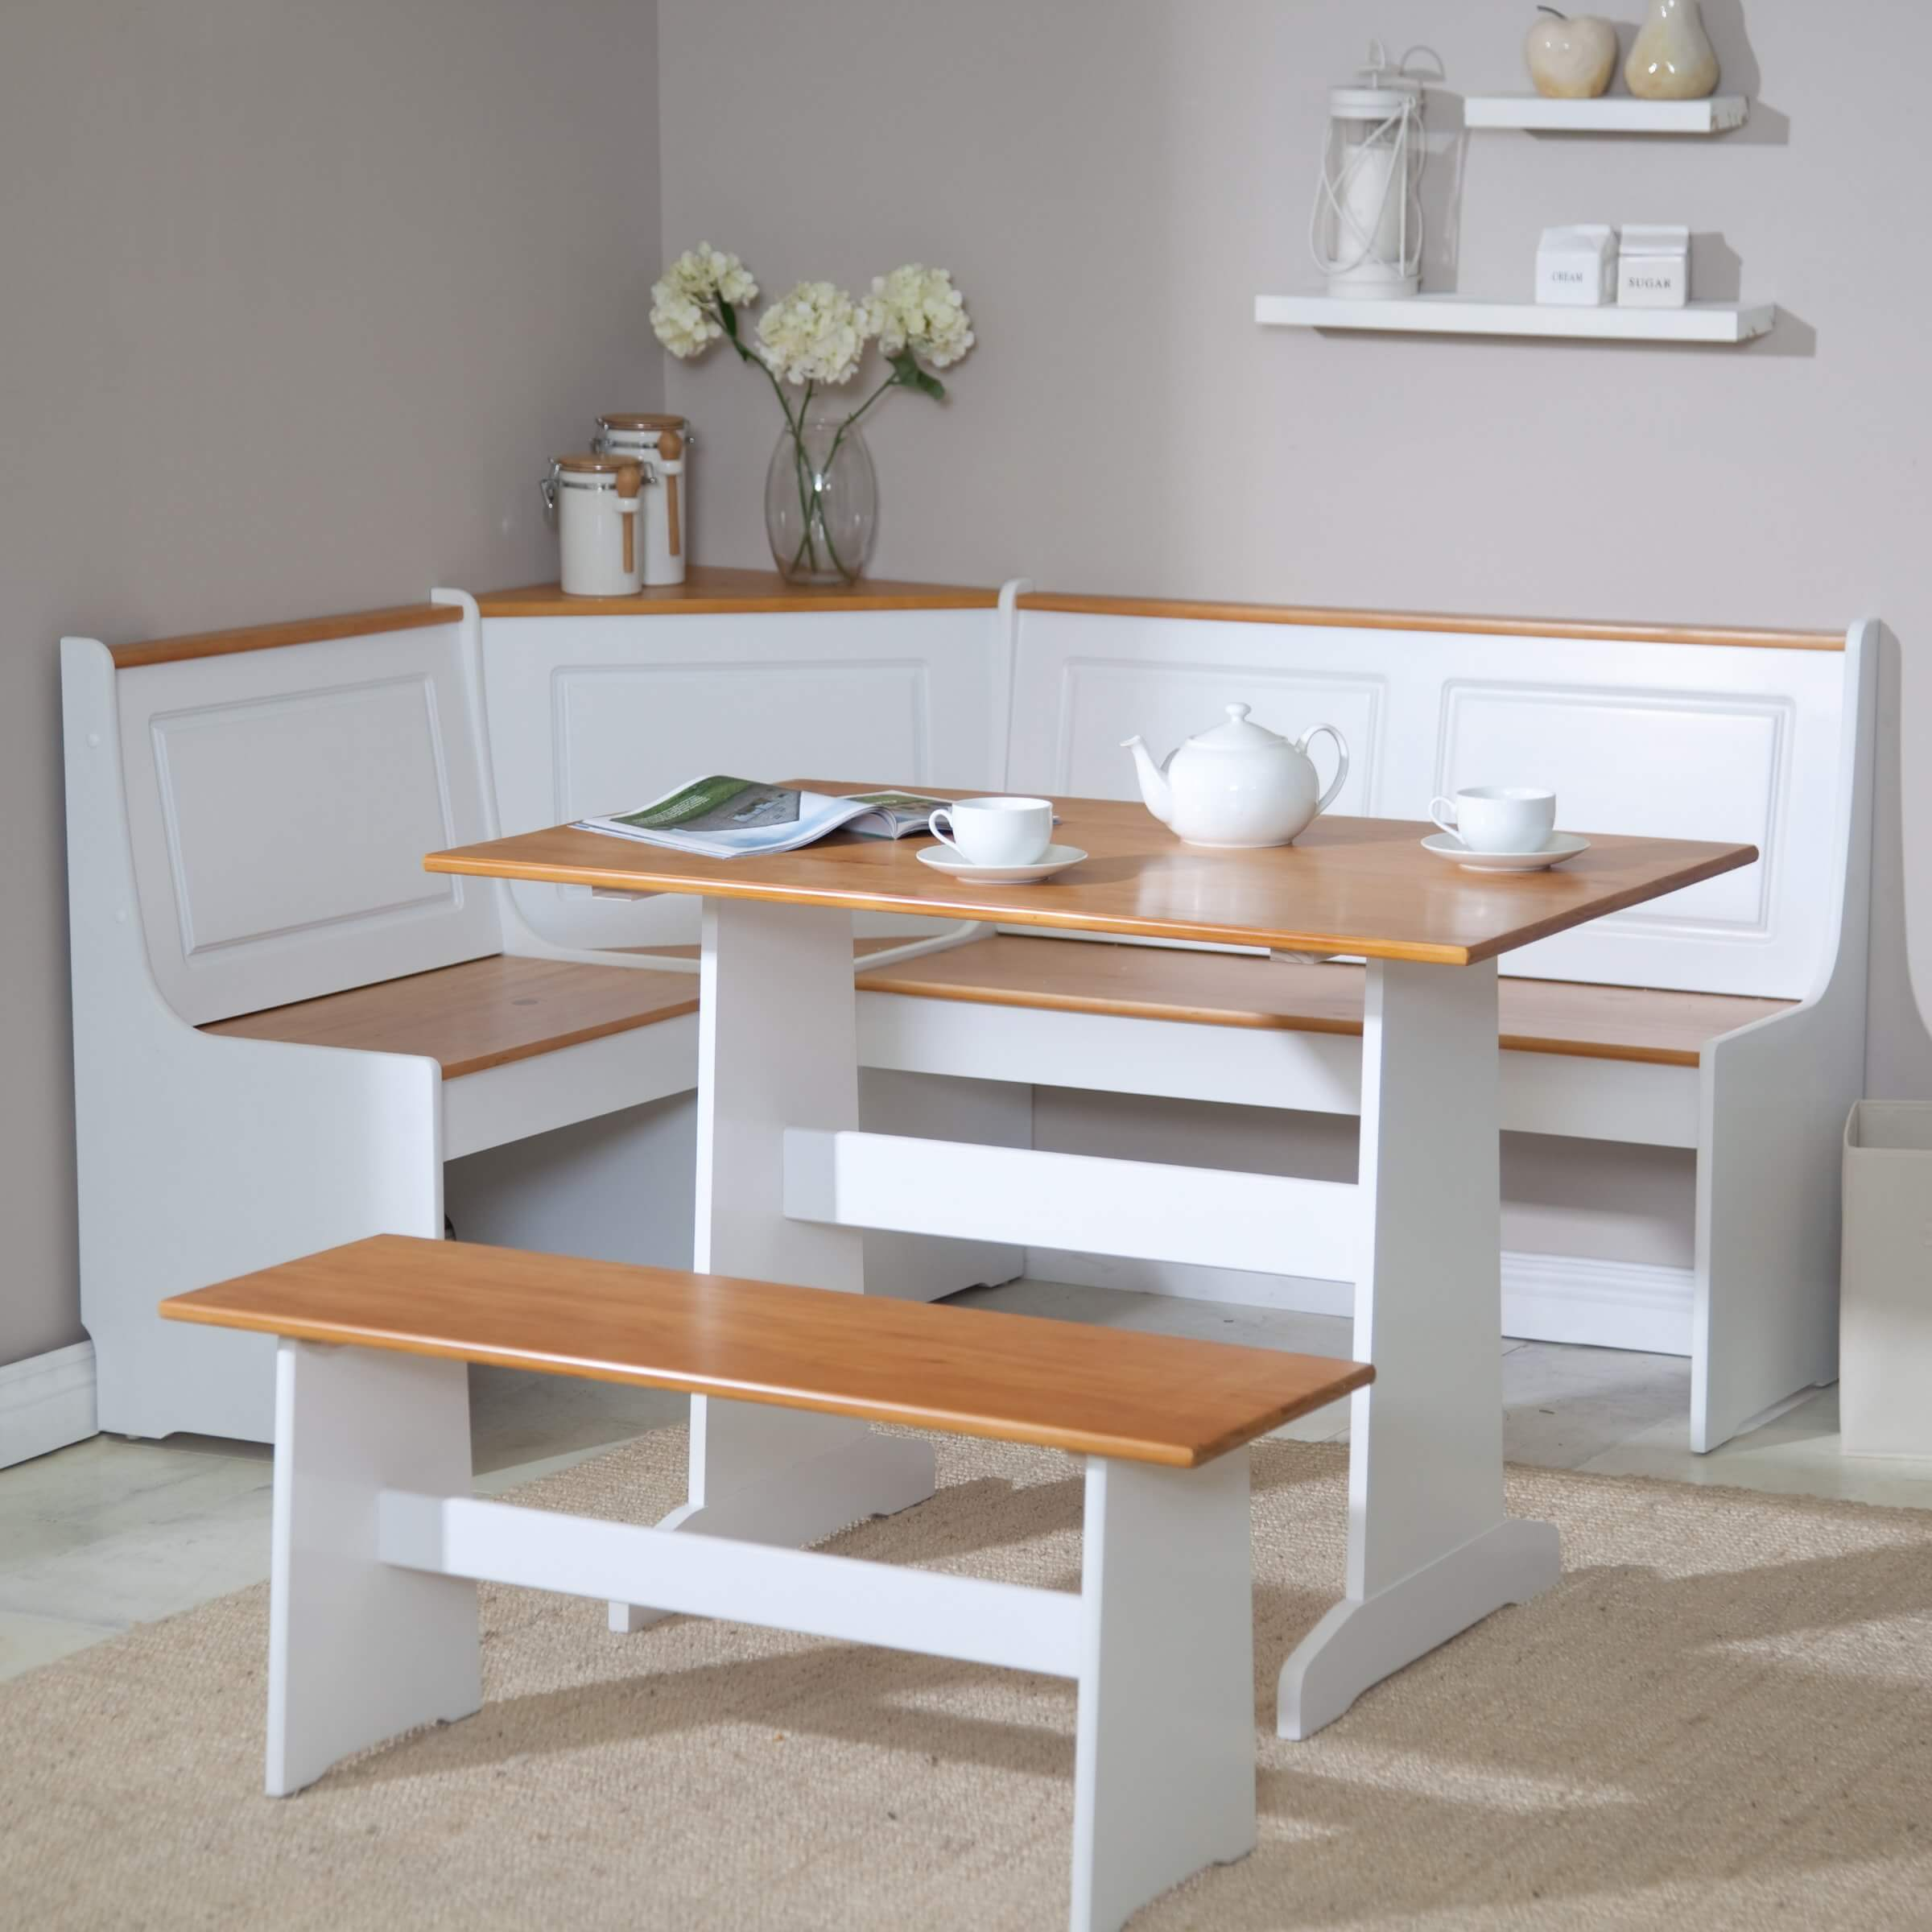 breakfast nook furniture sets kitchen tables sets Ardmore Breakfast Nook Set